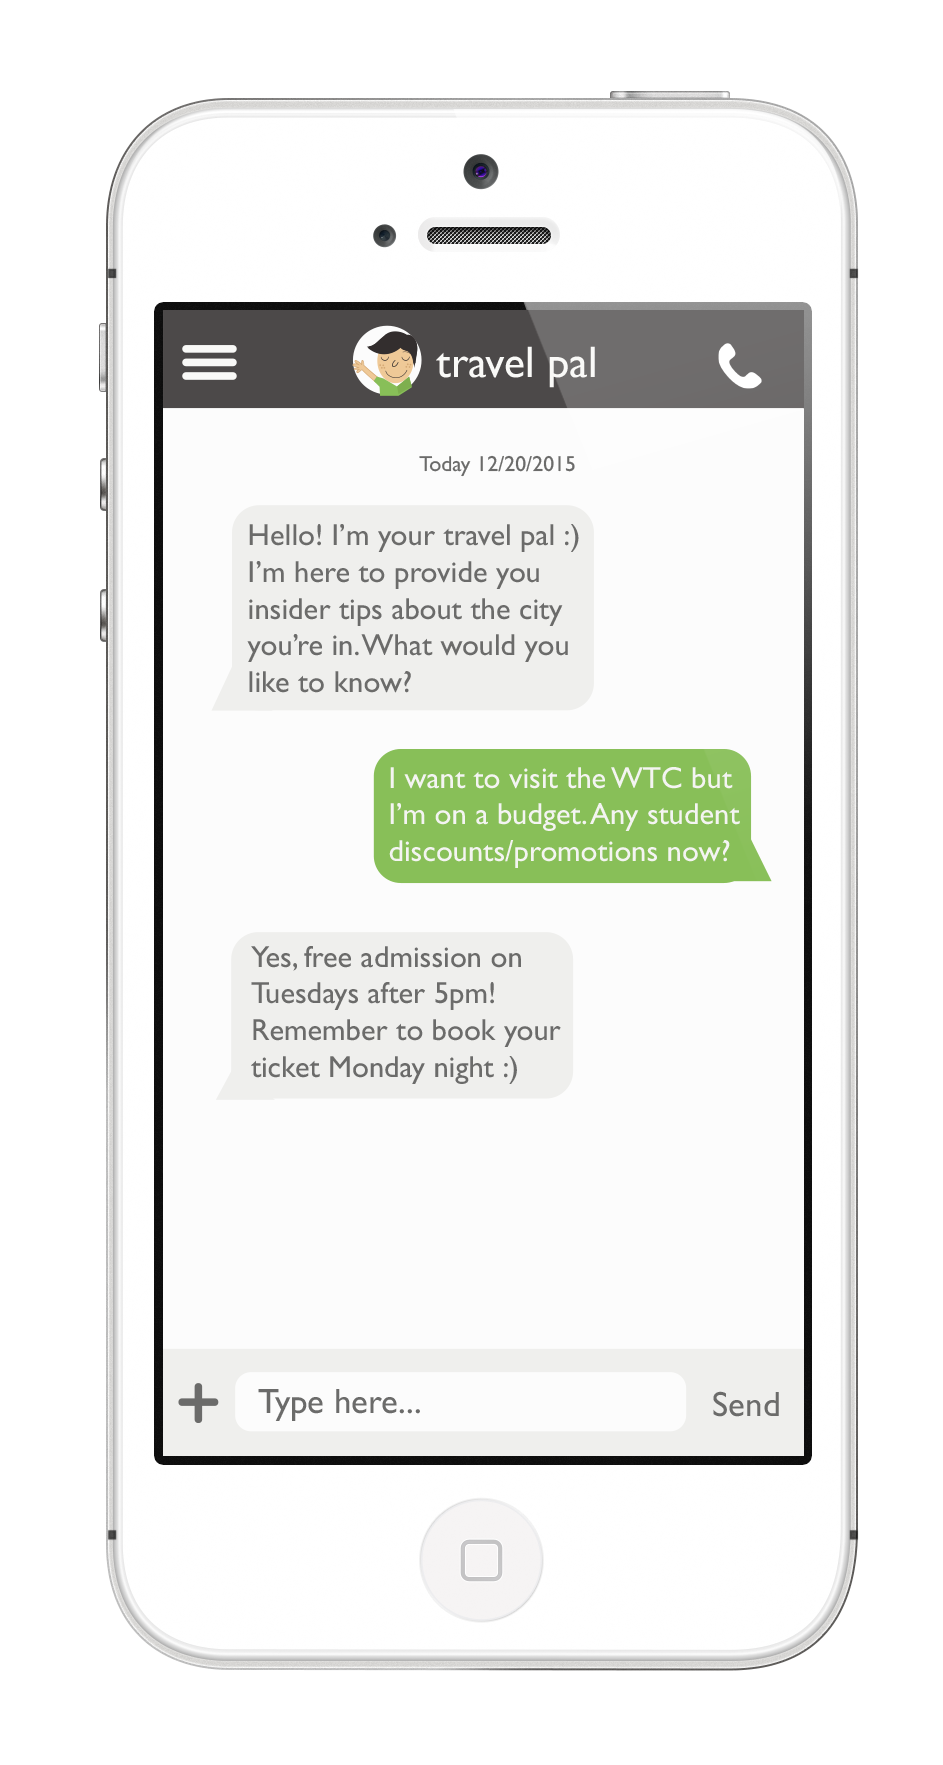 Travel Pal App Text2.png